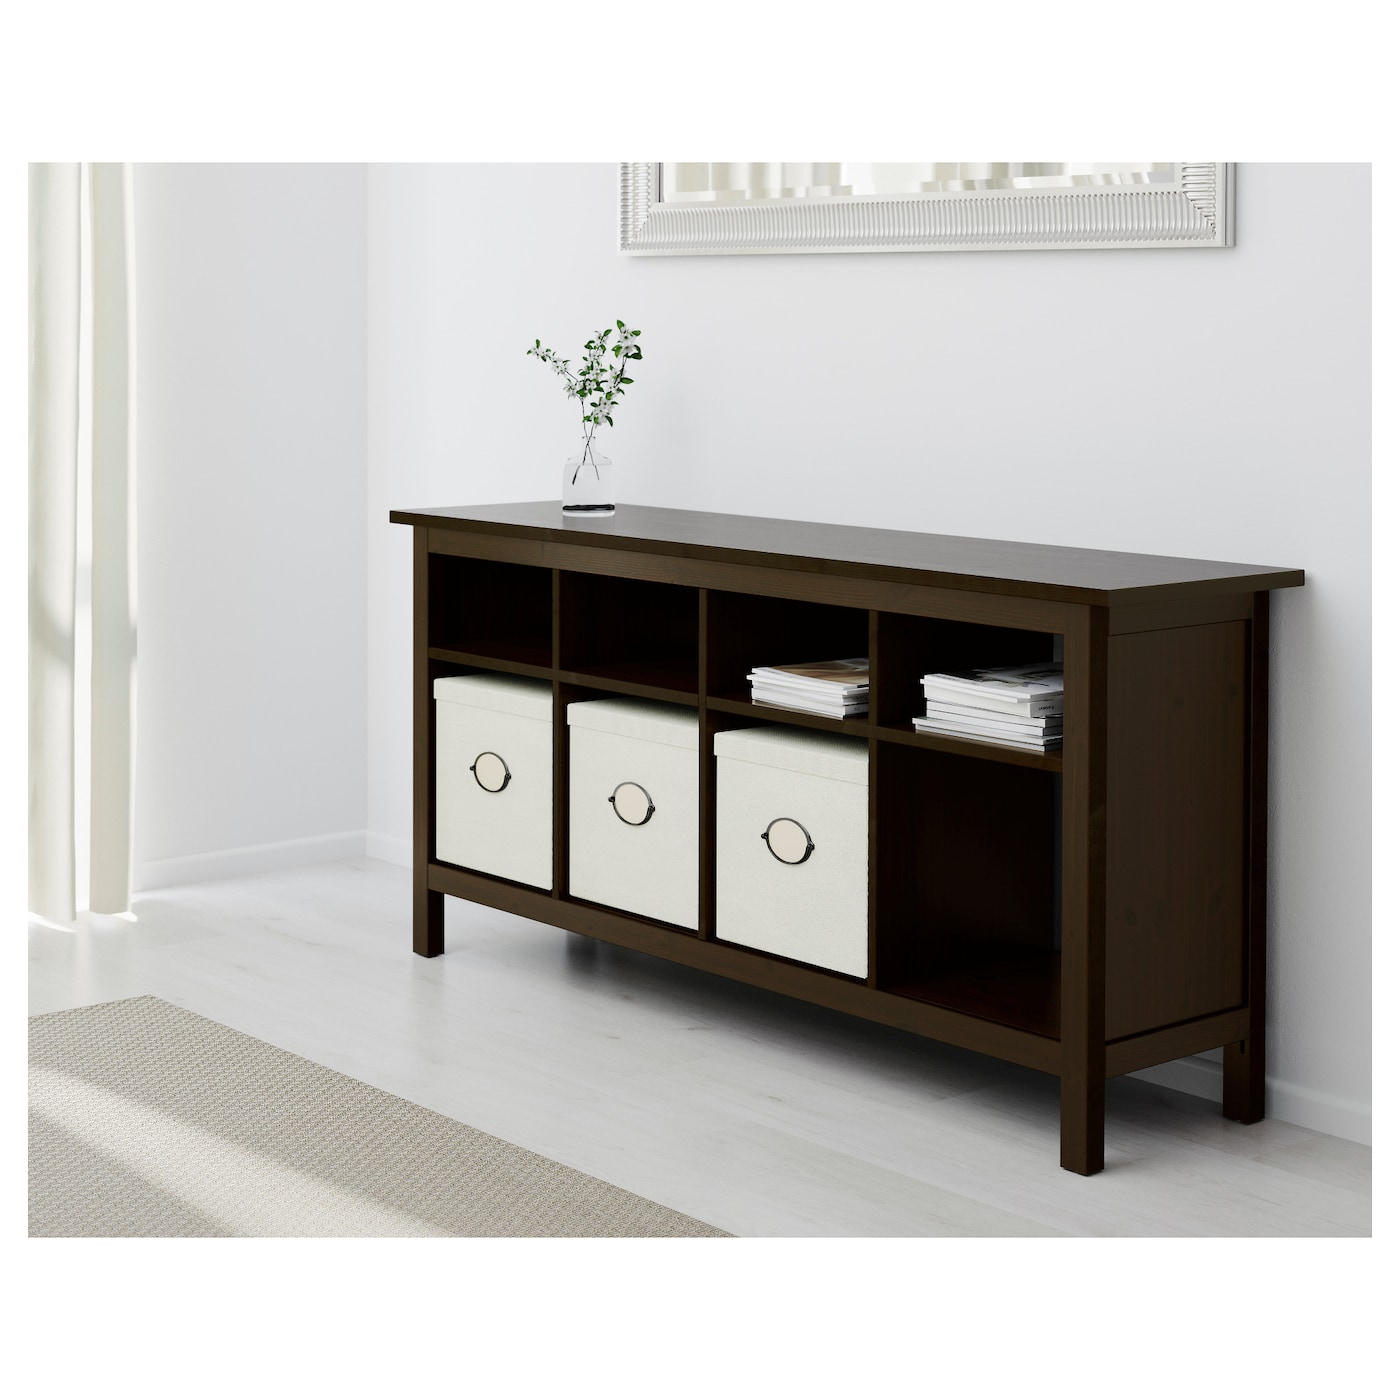 hemnes console table black brown 157 x 40 cm ikea. Black Bedroom Furniture Sets. Home Design Ideas